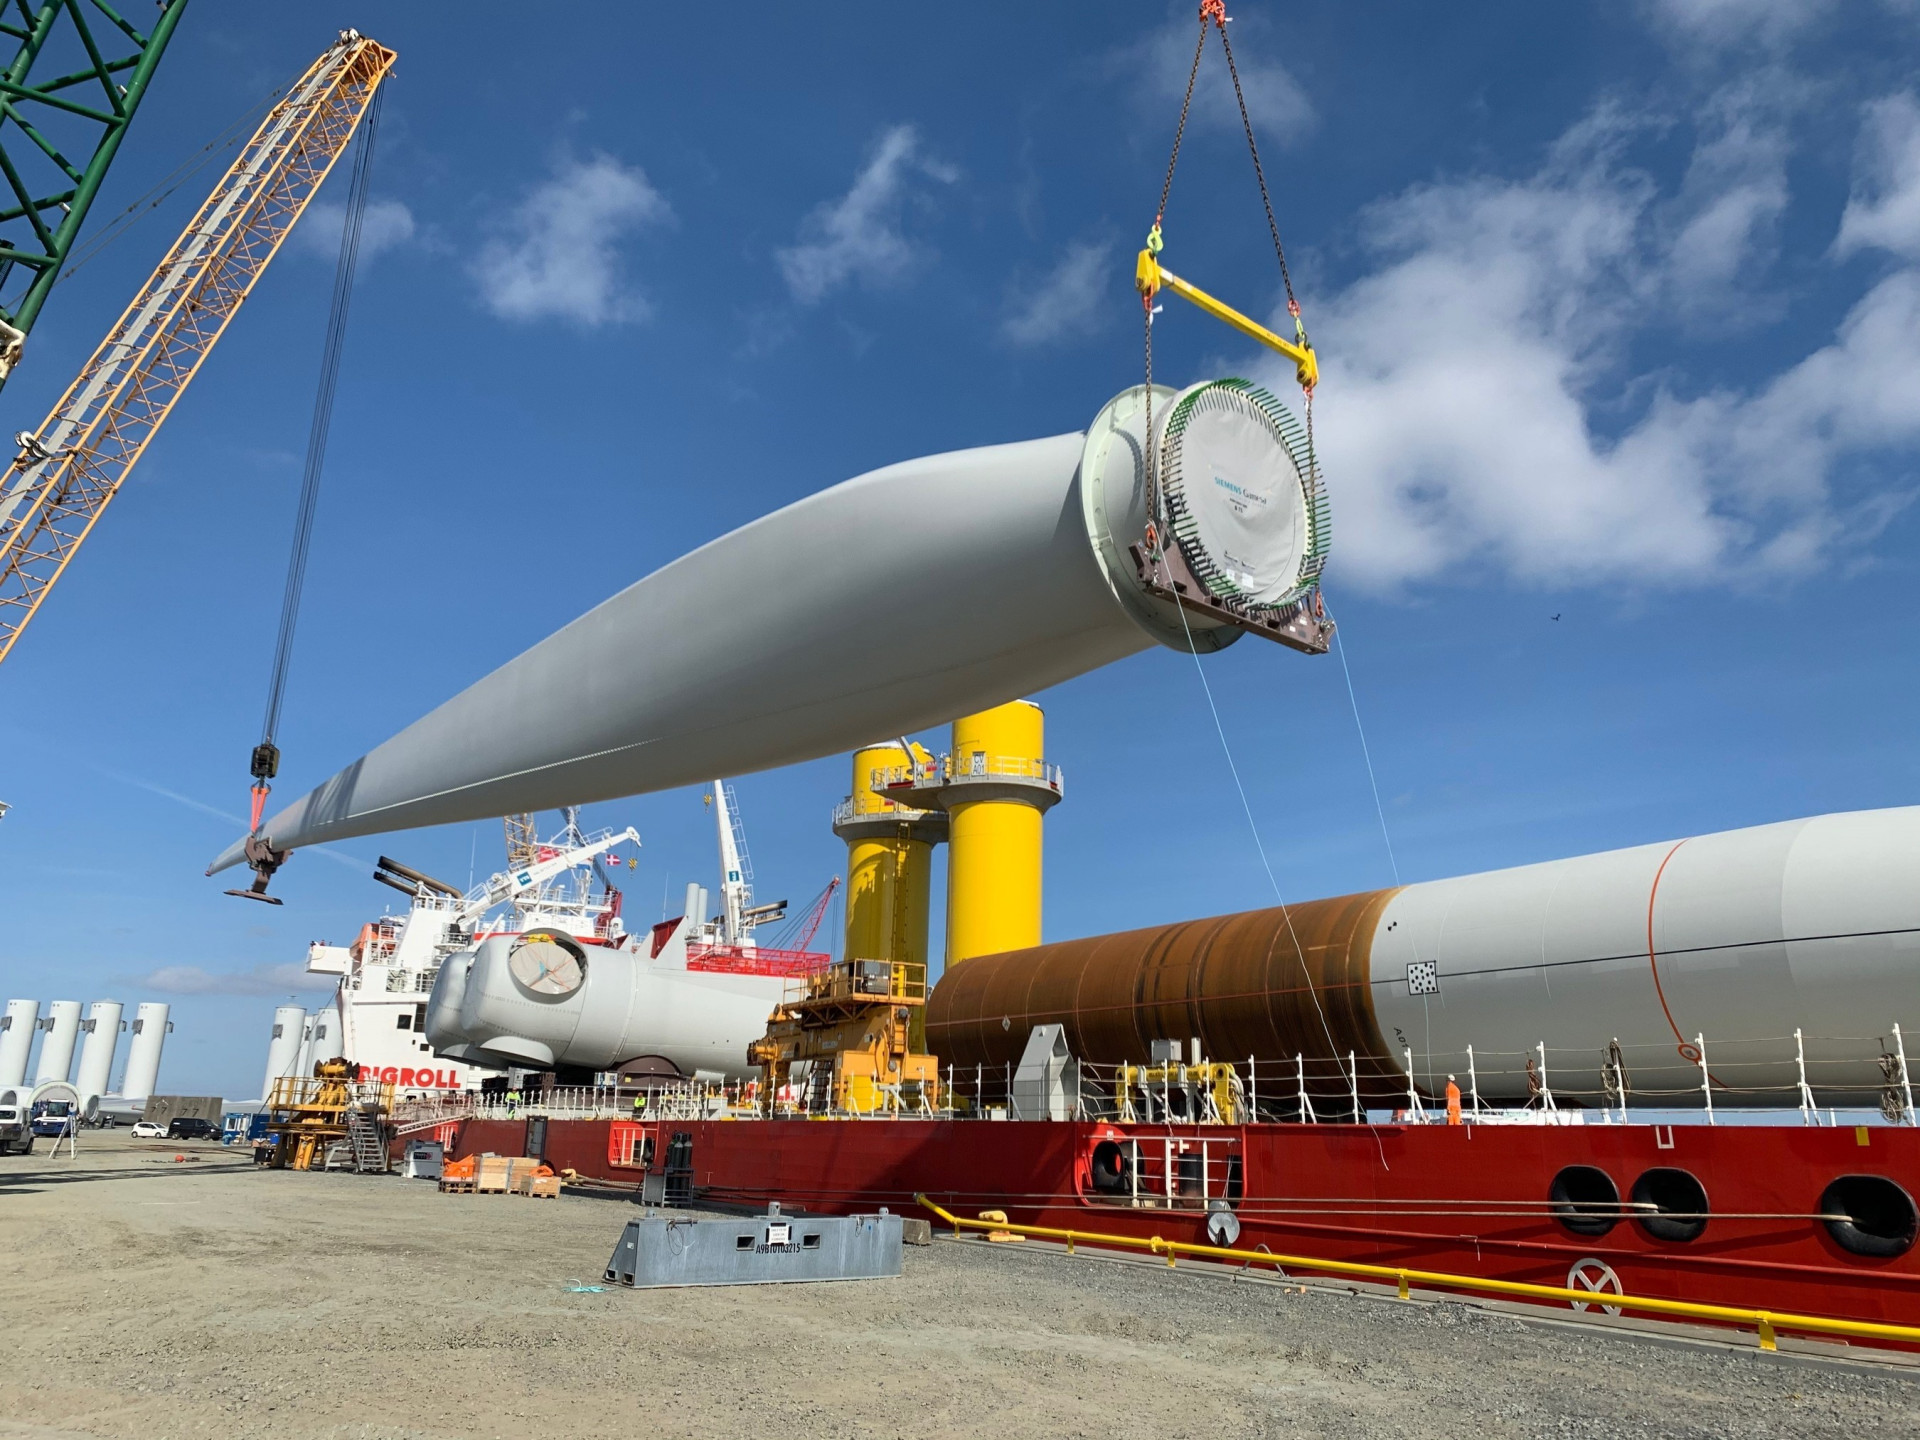 Parts for two pilot wind turbines are loaded in April at Rostock, Germany en route for Virginia Beach. Picture credit: Dominion Energy